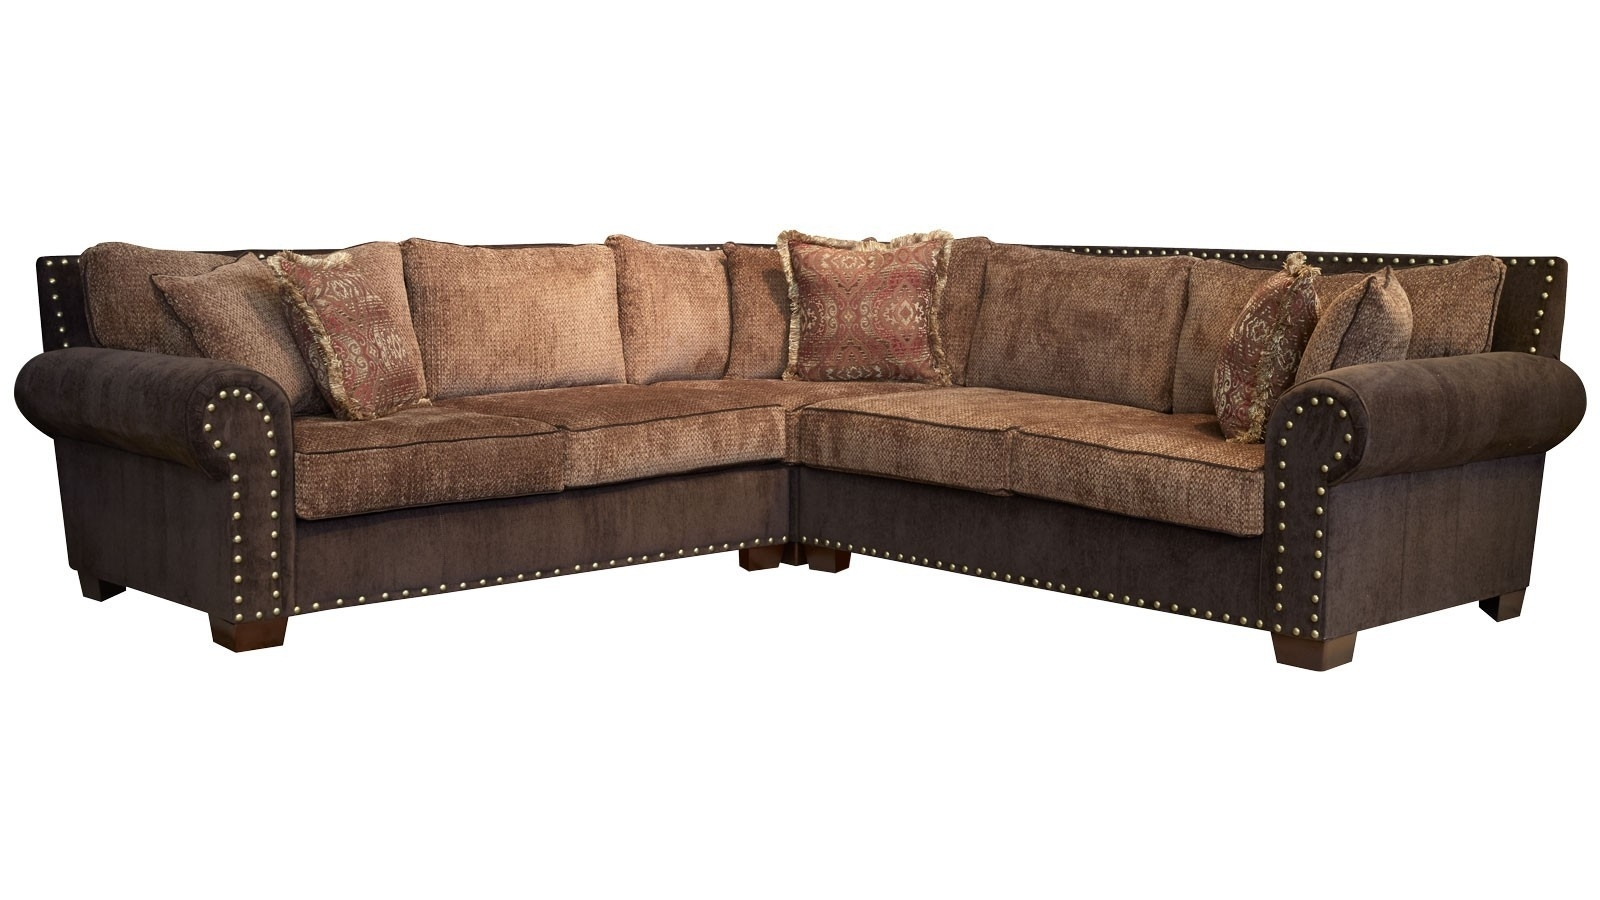 Barcelona Sectional | Gallery Furniture In Gallery Furniture Sectional Sofas (View 8 of 10)